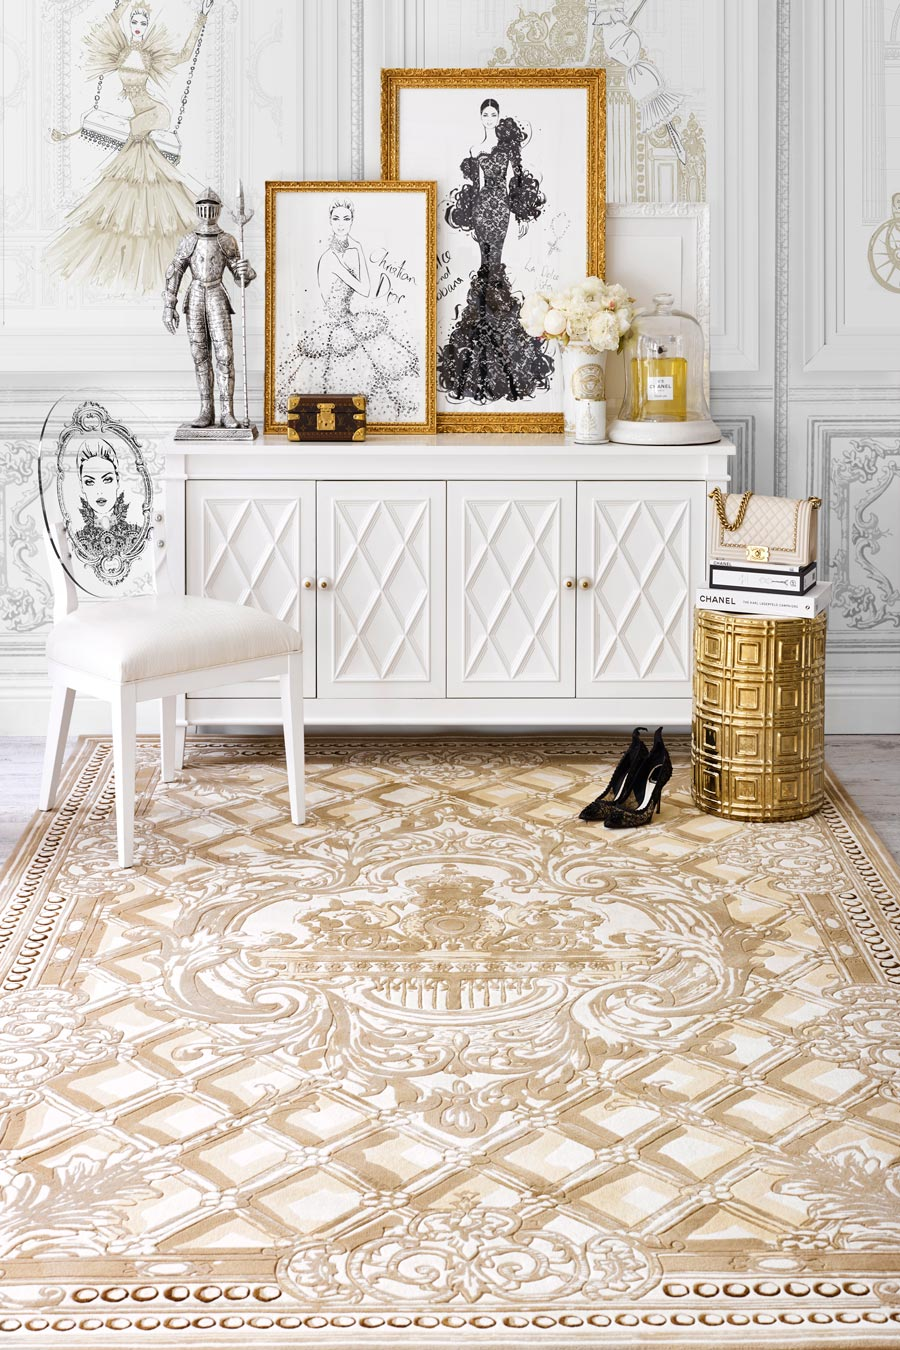 Styled image of classic The Palace Gates rug by Megan Hess in gold colour